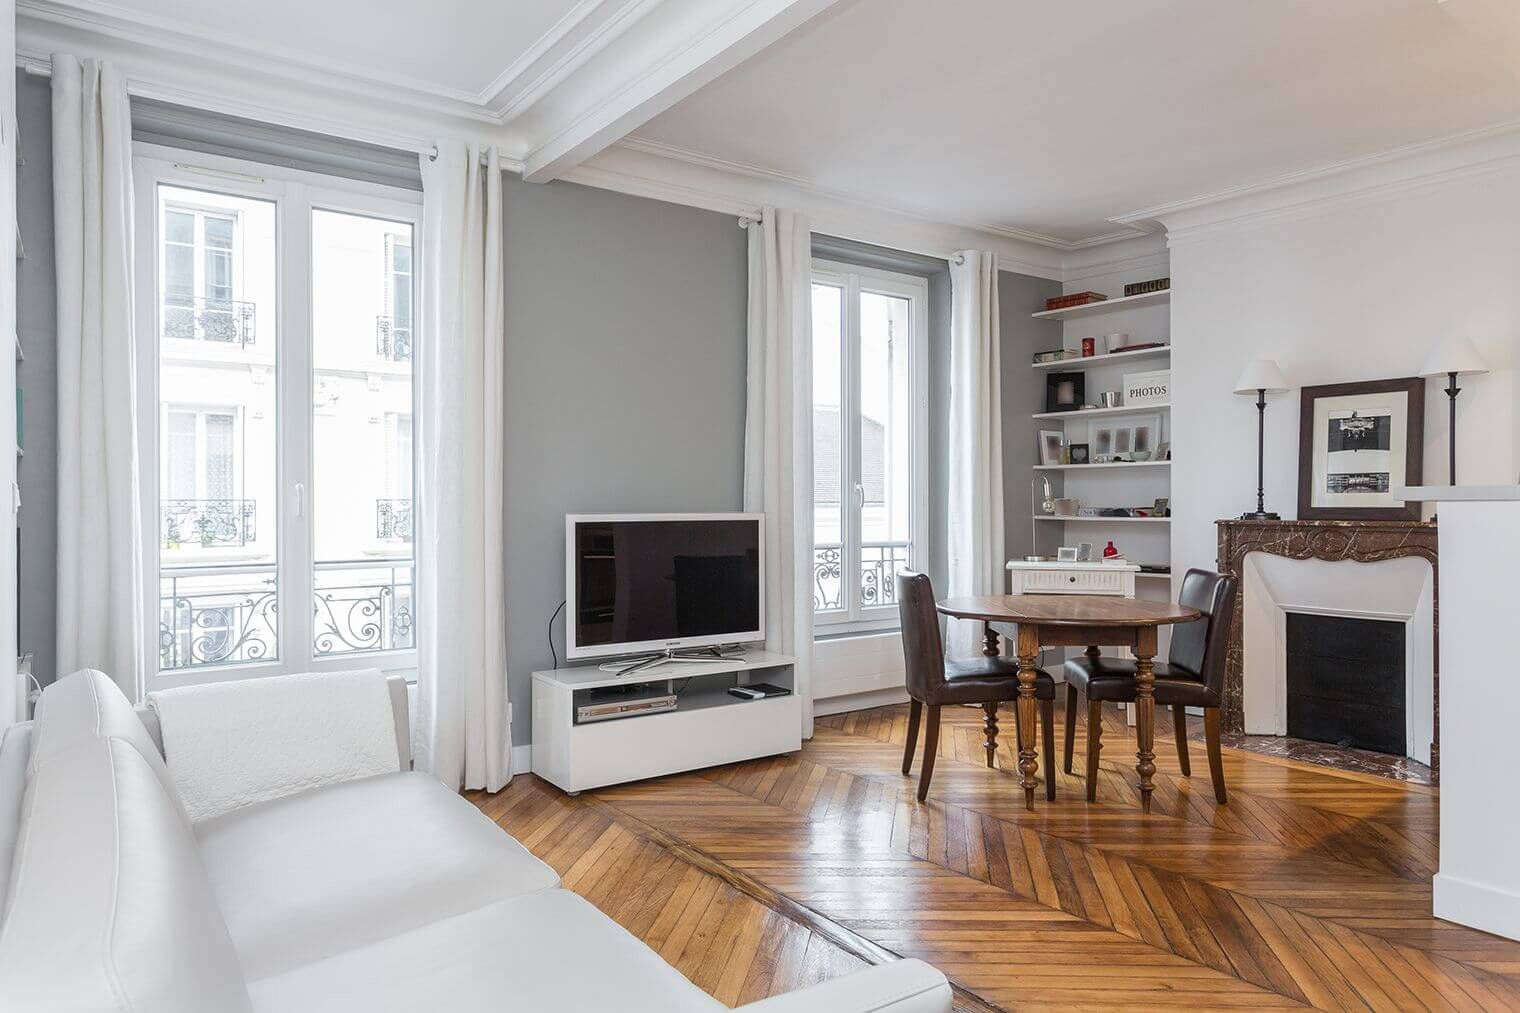 renovation d'un appartement haussmannien